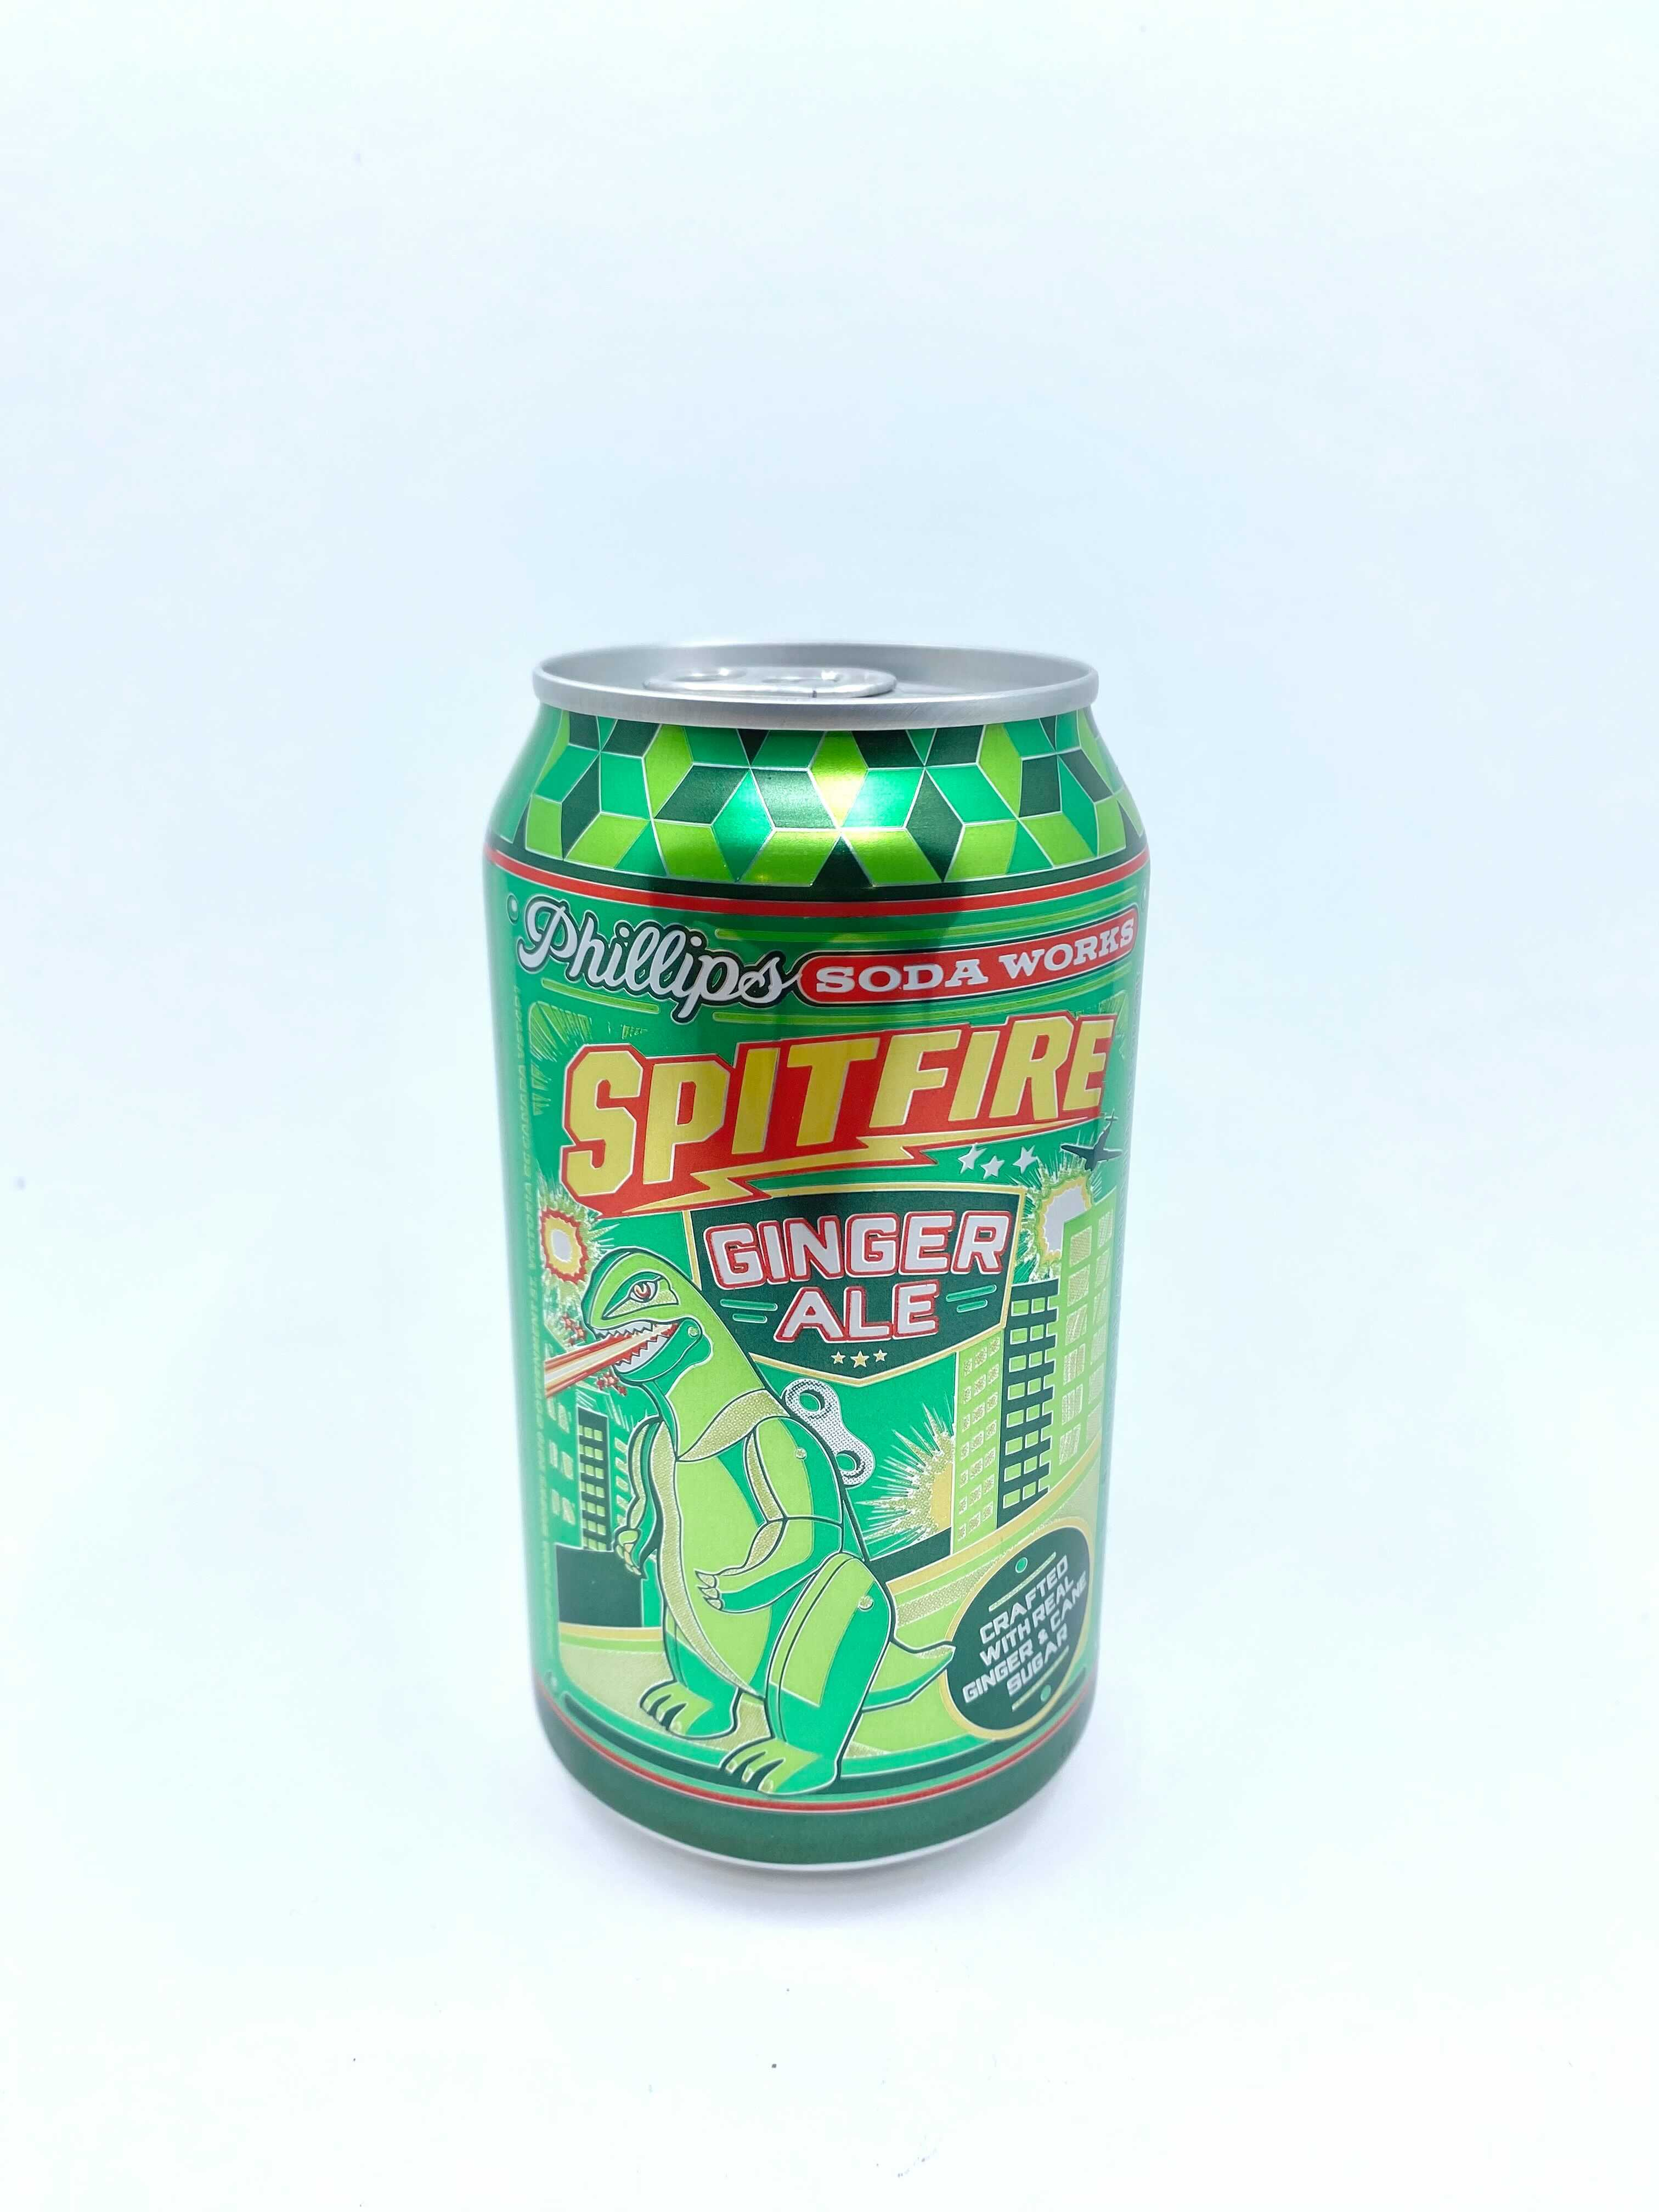 Can of Phillips Soda Works spitfire ginger ale